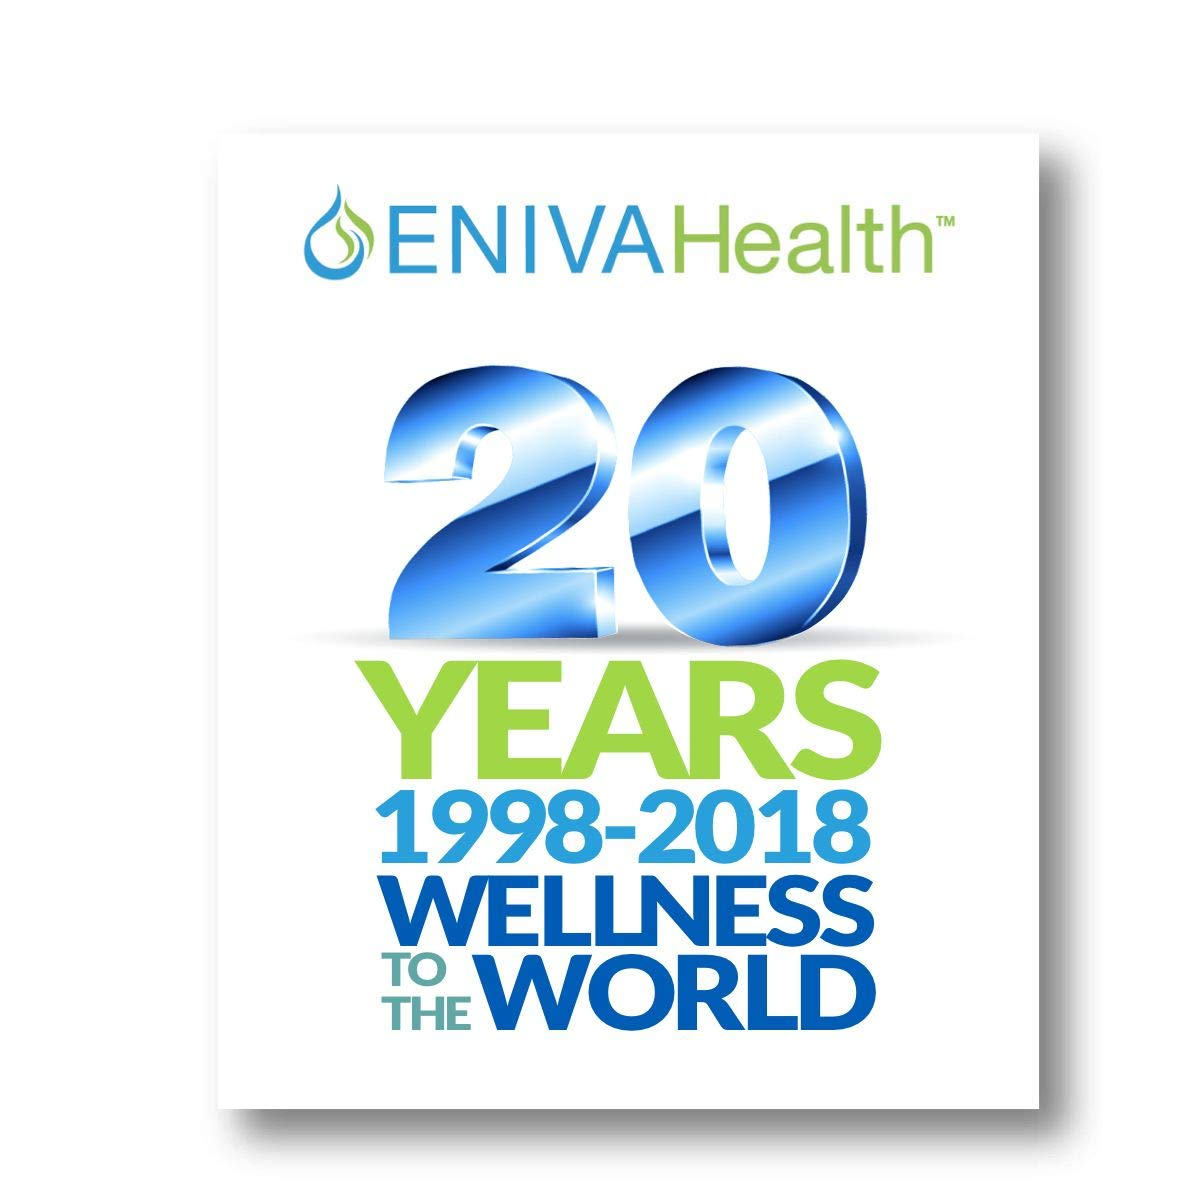 Detox and Cleanse 7 Day NO Dieting Kit for Weight Loss, Belly Fat, Liver, Colon   All Natural. Non Fasting. Complete Kit (with Packets). Voted Best 2018. Eniva Health by Eniva Health (Image #7)